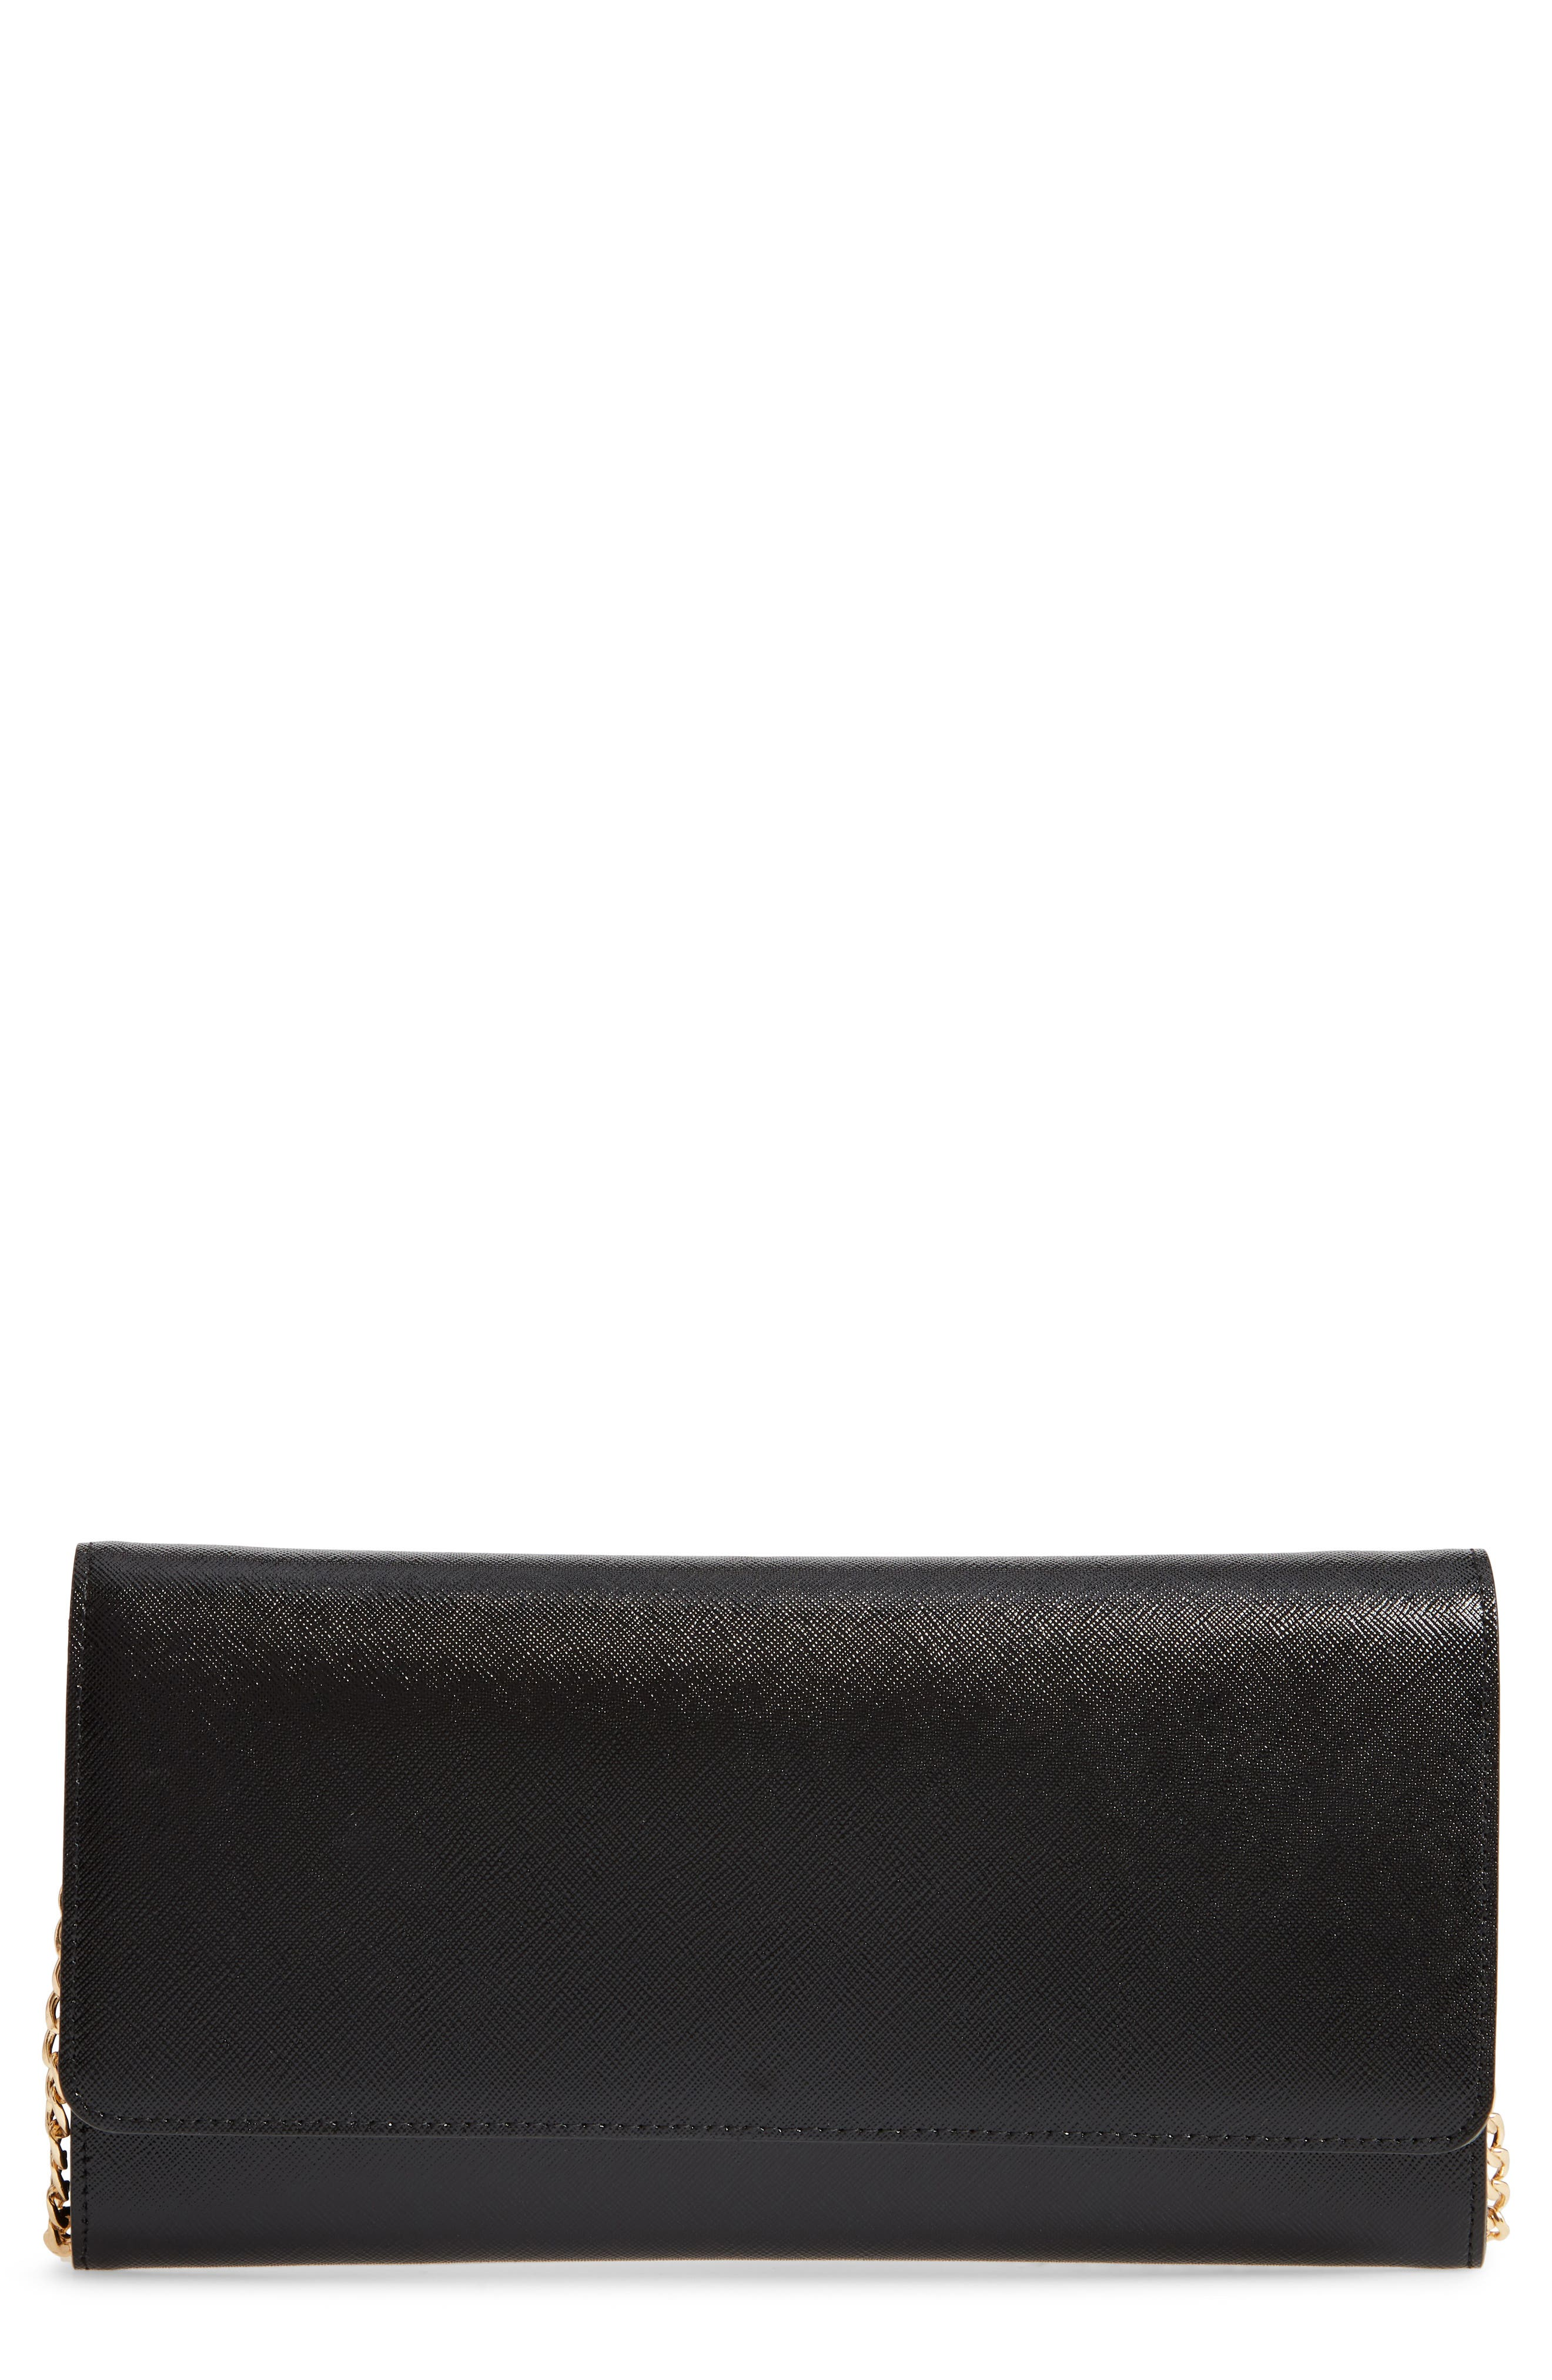 NORDSTROM, Selena Leather Clutch, Main thumbnail 1, color, BLACK